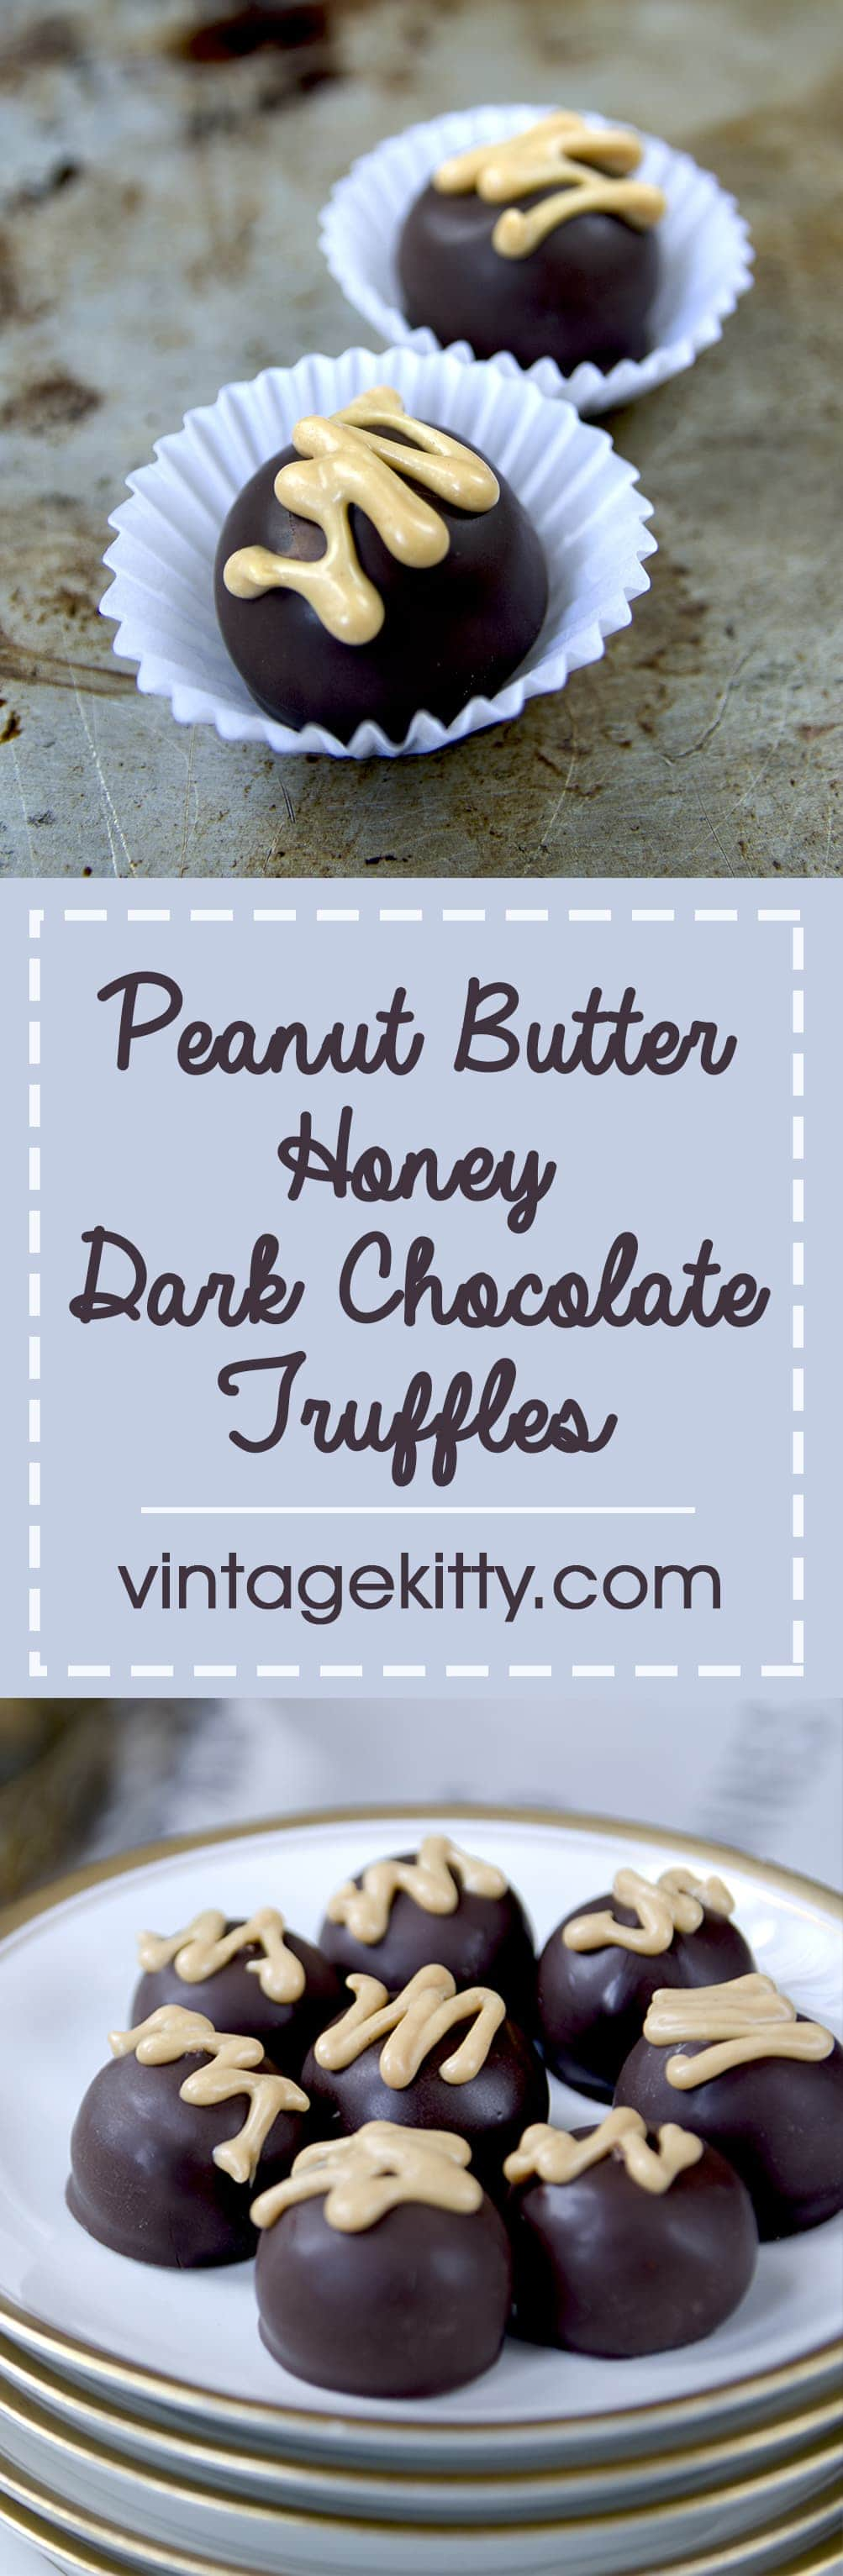 Peanut Butter Honey Dark Chocolate Truffles are a decadent way to celebrate #Chocotoberfest! Filled with a creamy peanut butter and honey filling, these candies are sure to please a crowd.   vintagekitty.com